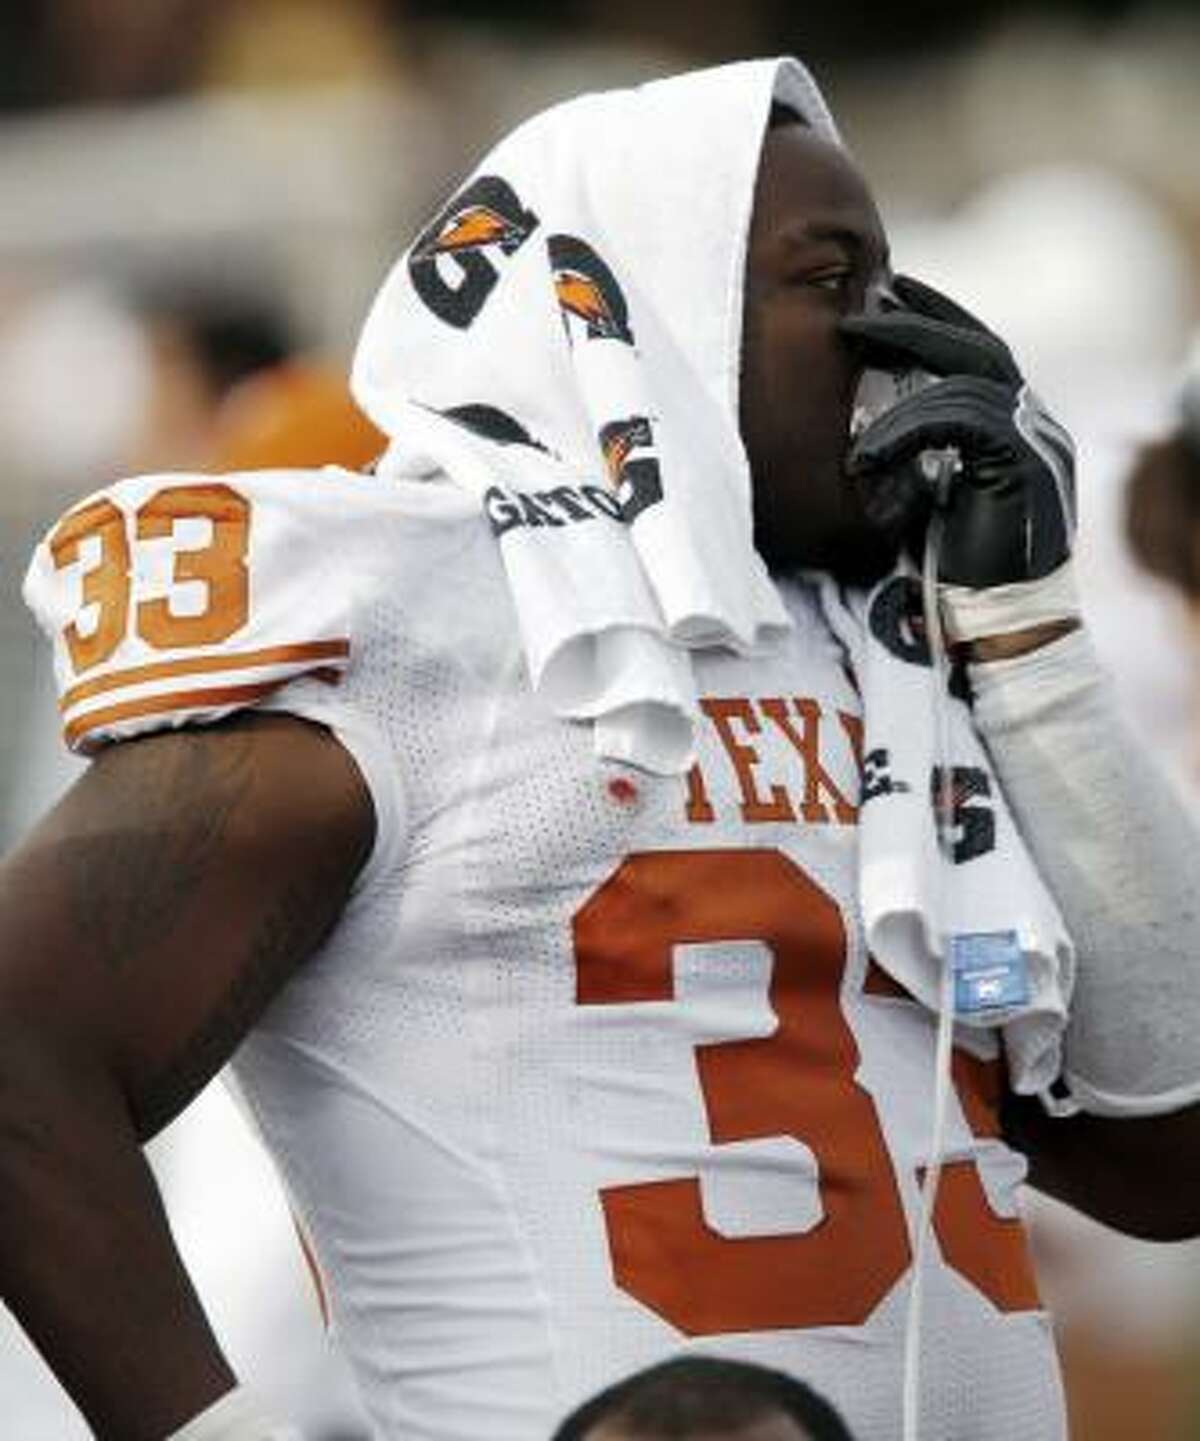 Texas defensive tackle Lamarr Houston gets some oxygen while on the sideline.